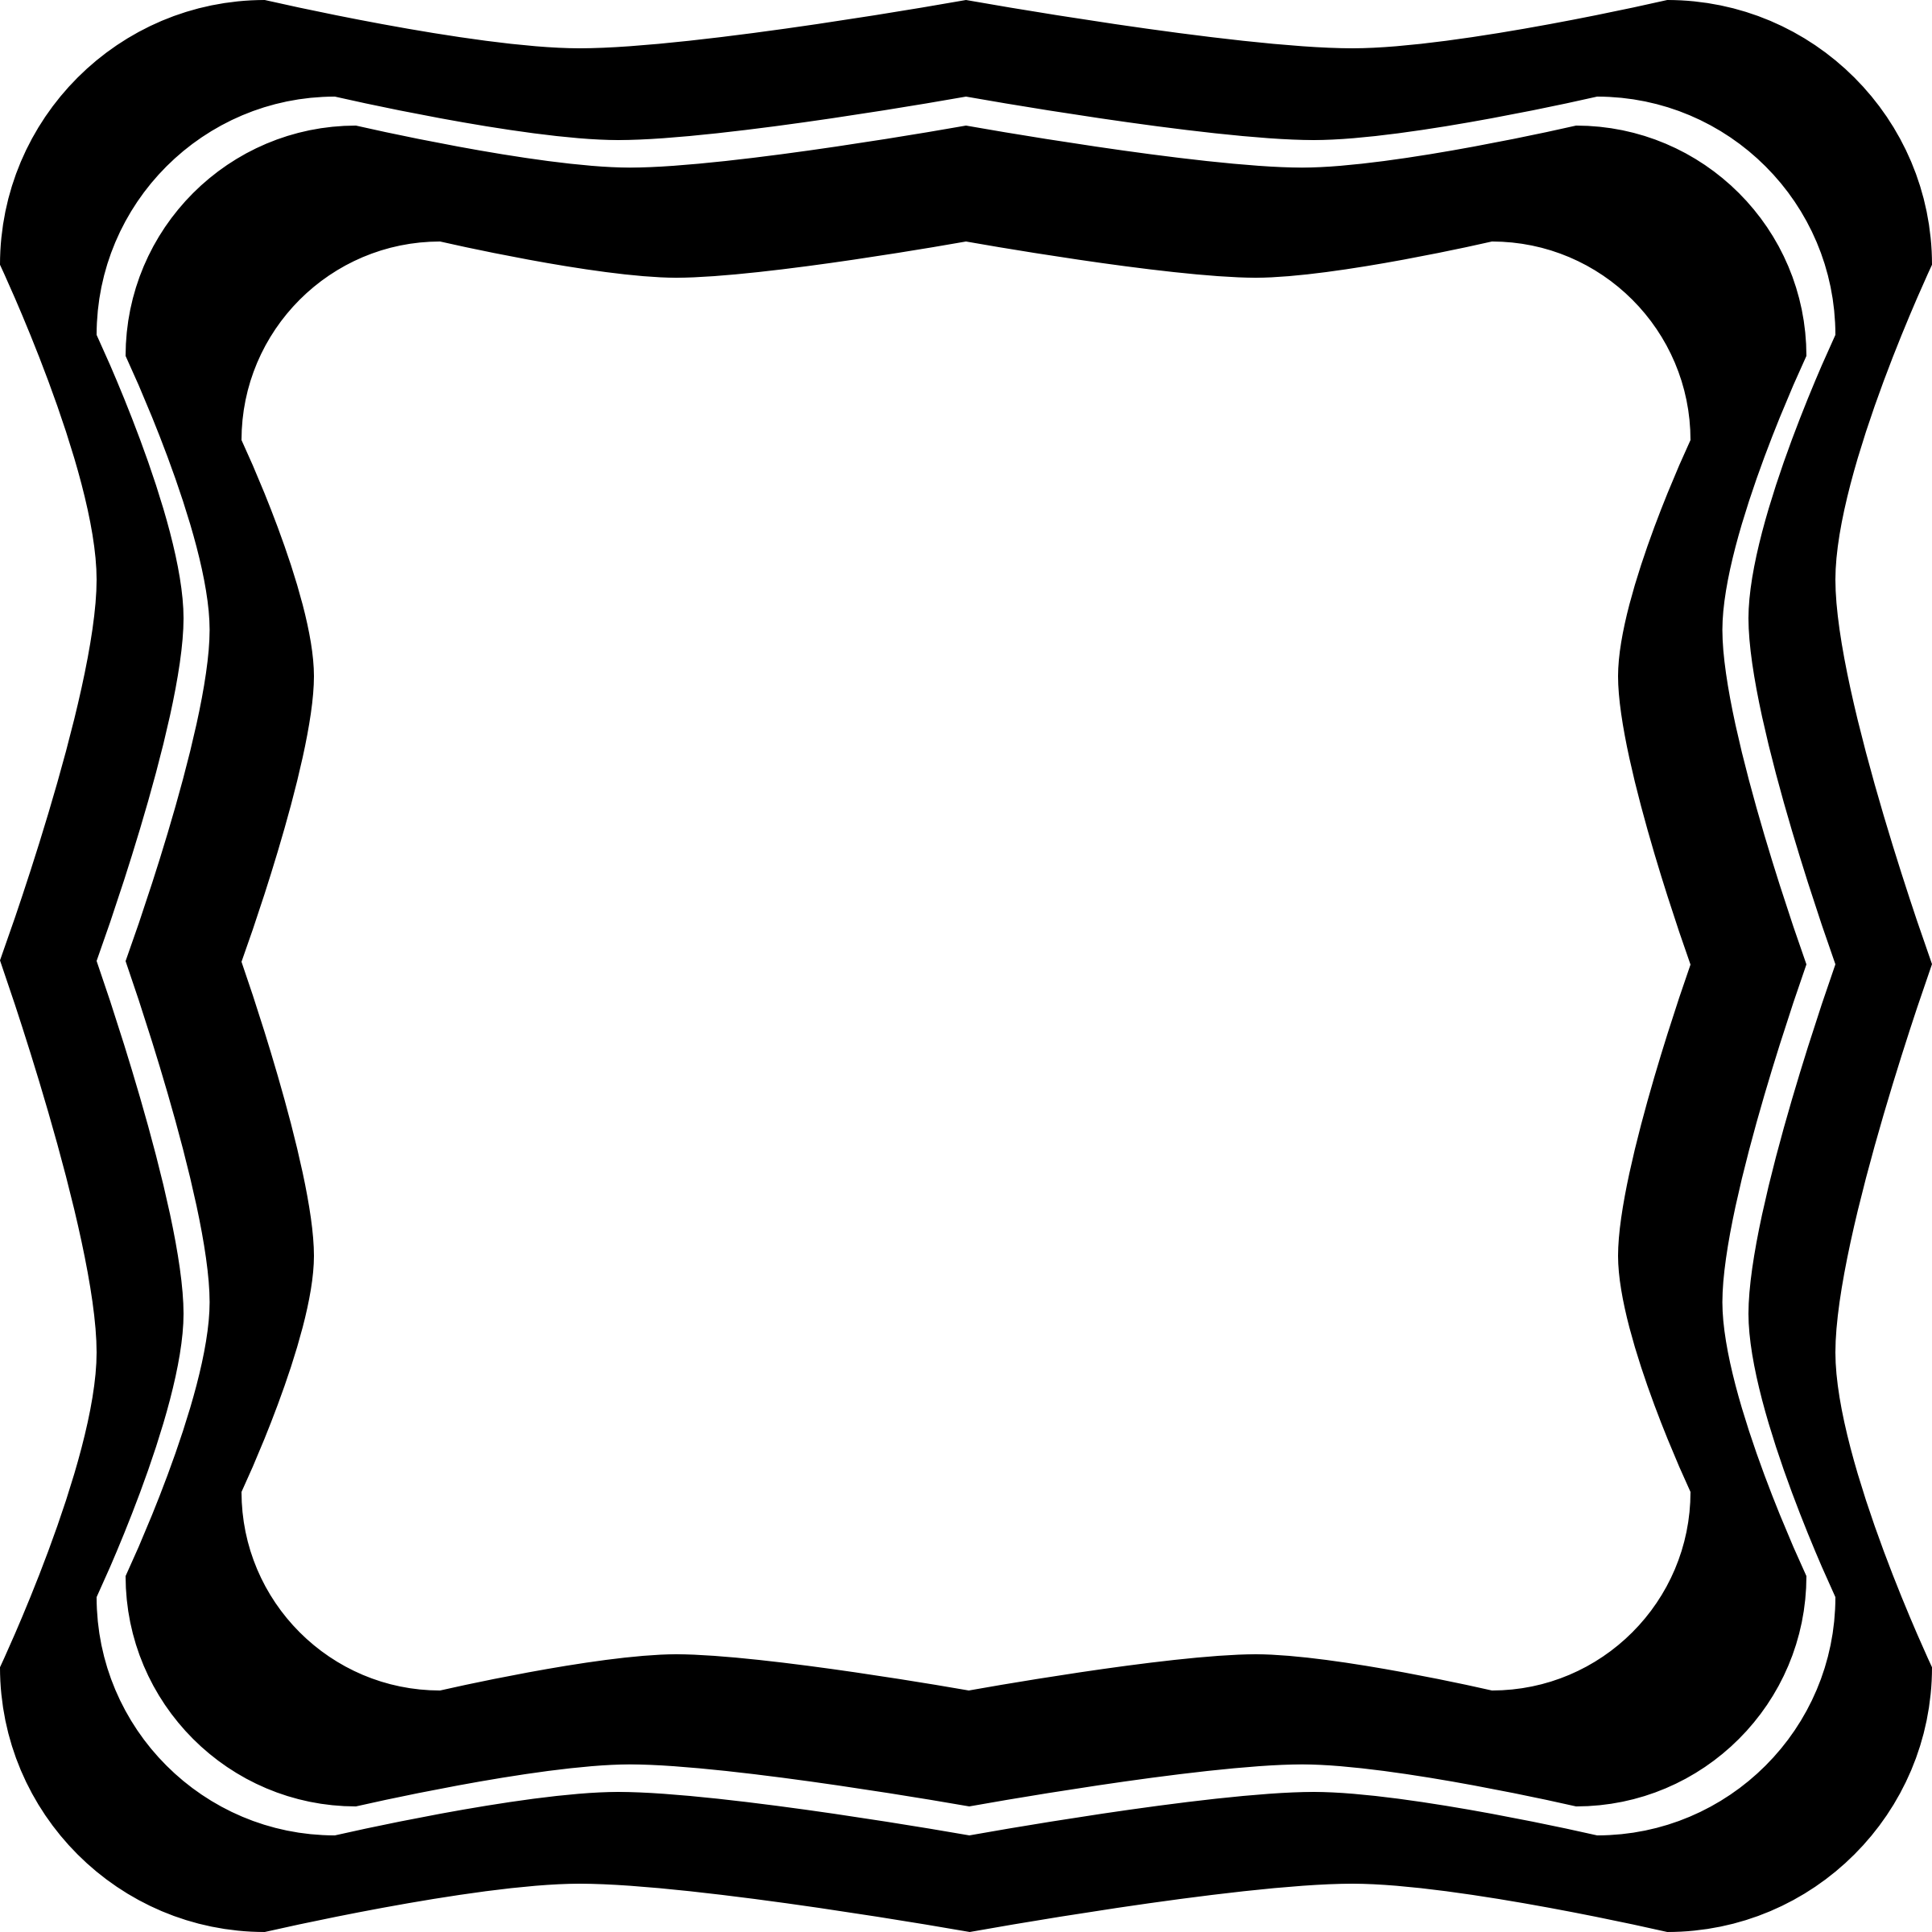 Squiggled big image png. Square clipart square frame